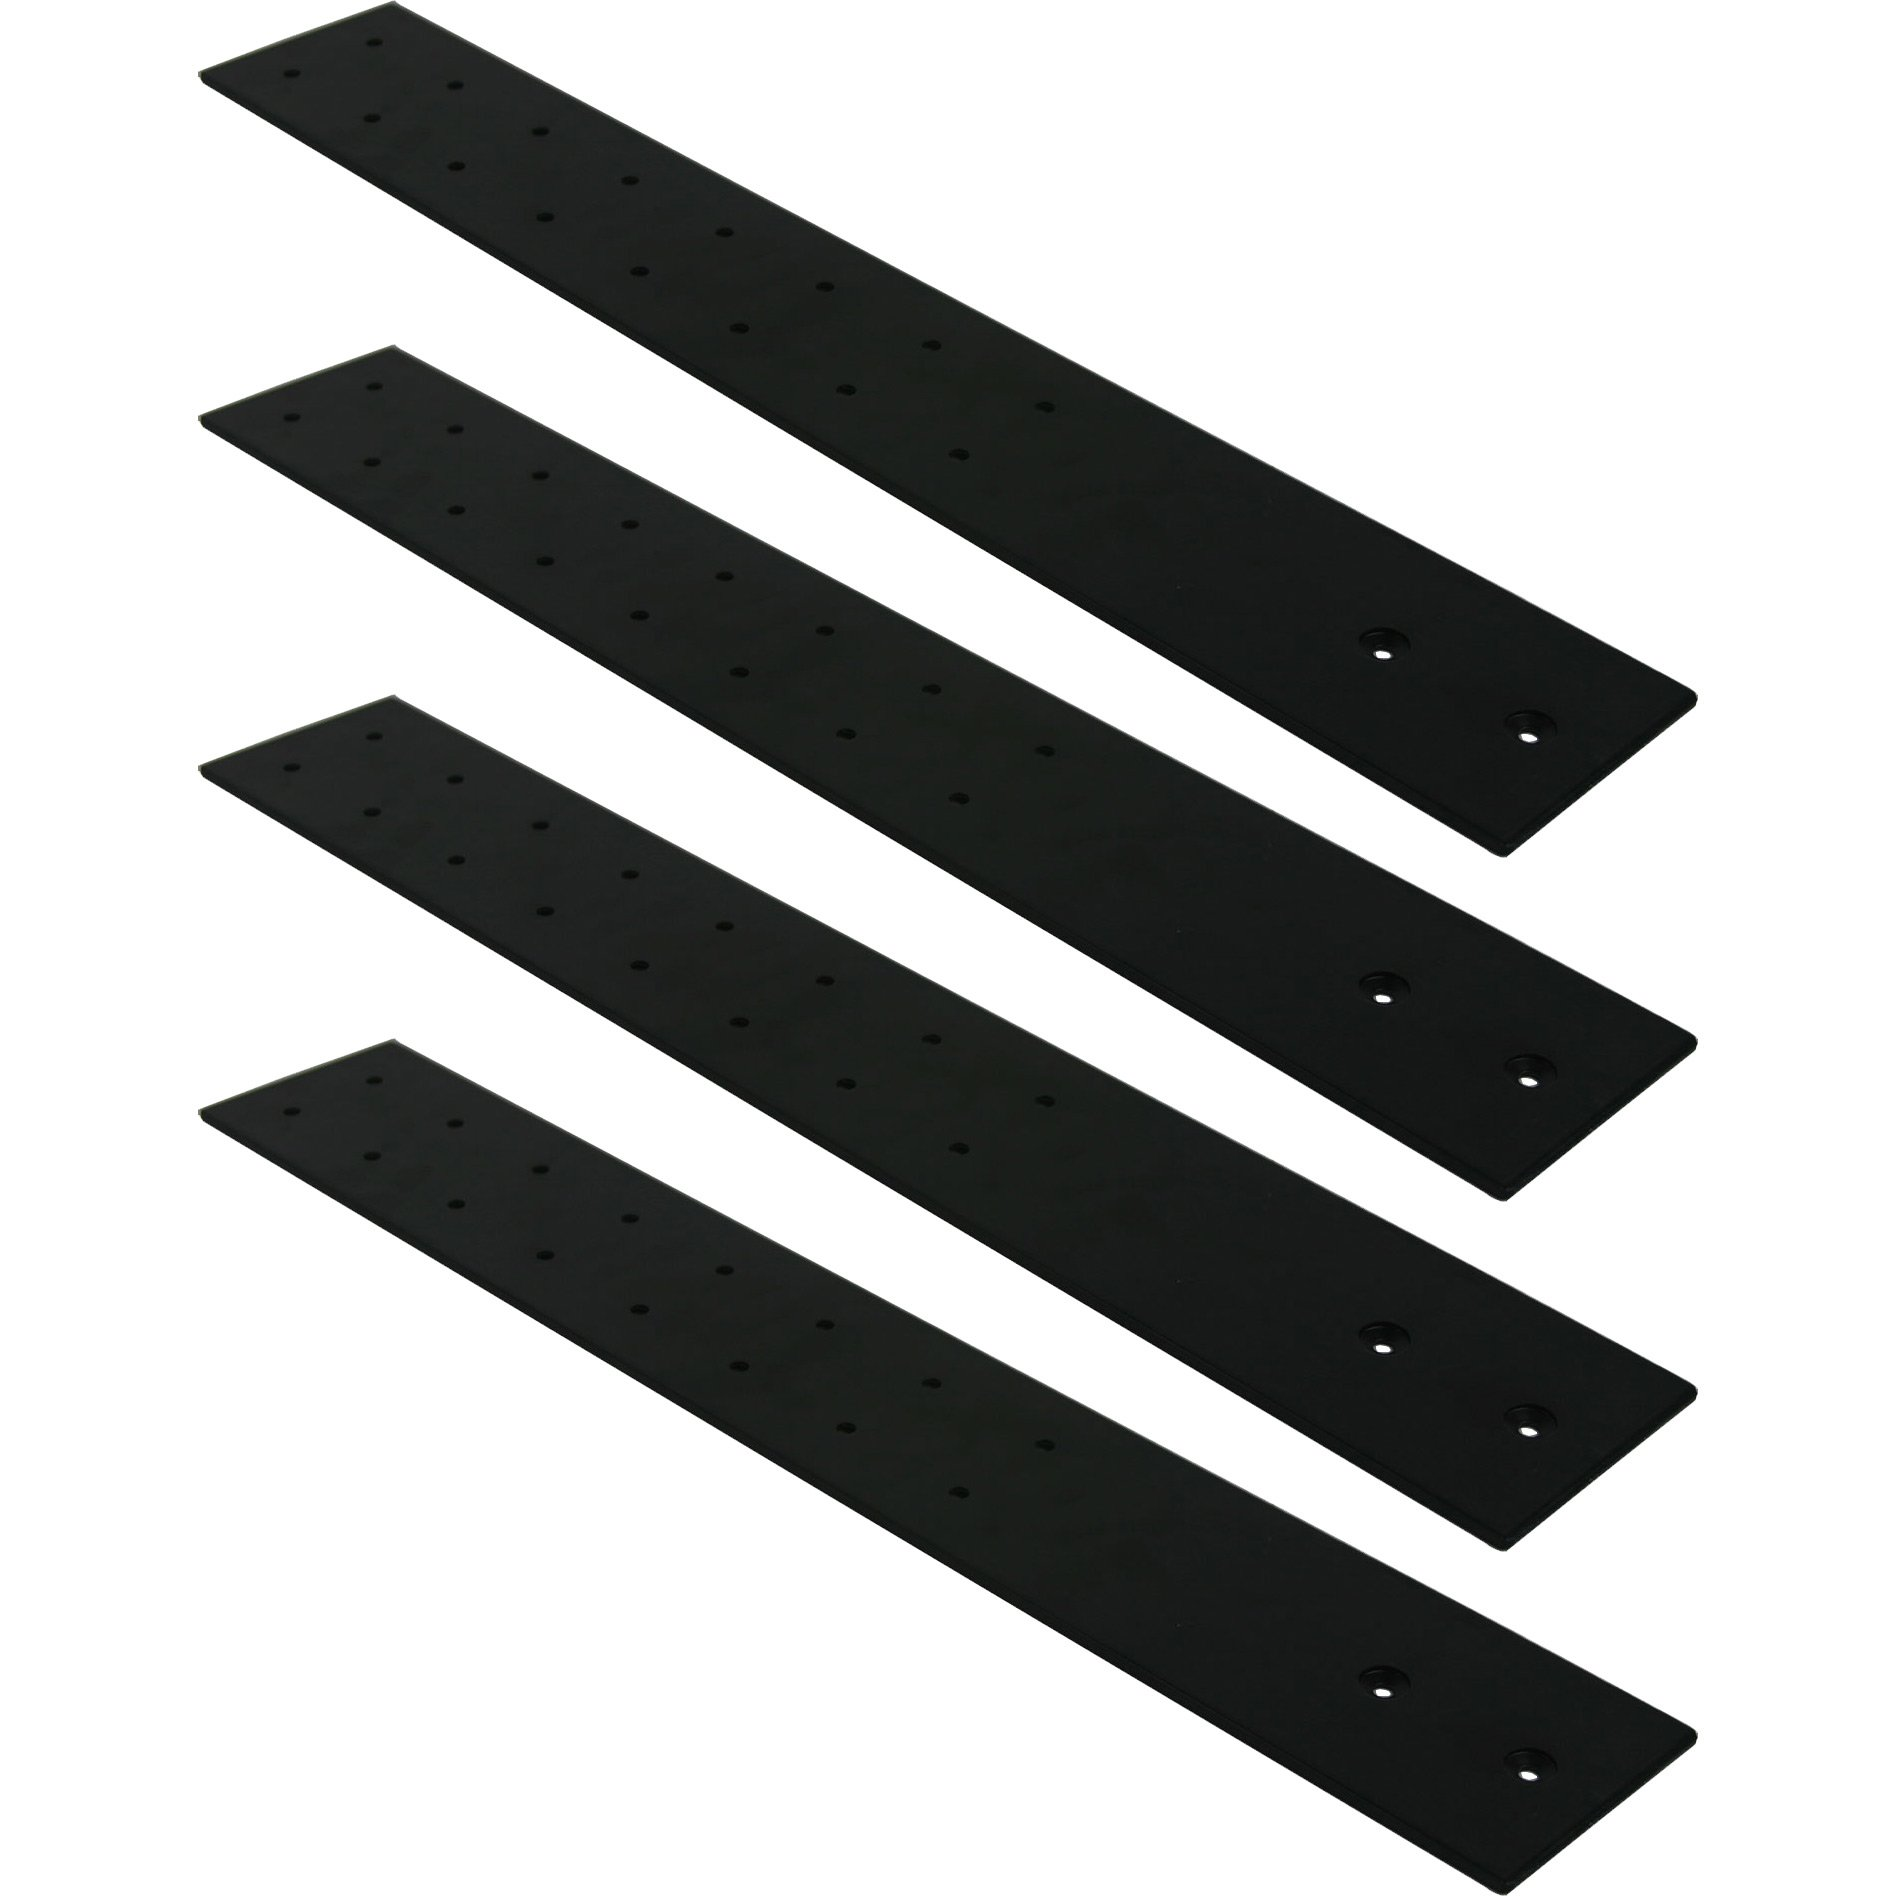 FastCap 09906 3-1/2-inches x 24-inches Black SpeedBrace Stealth 300LB, 4-Pack